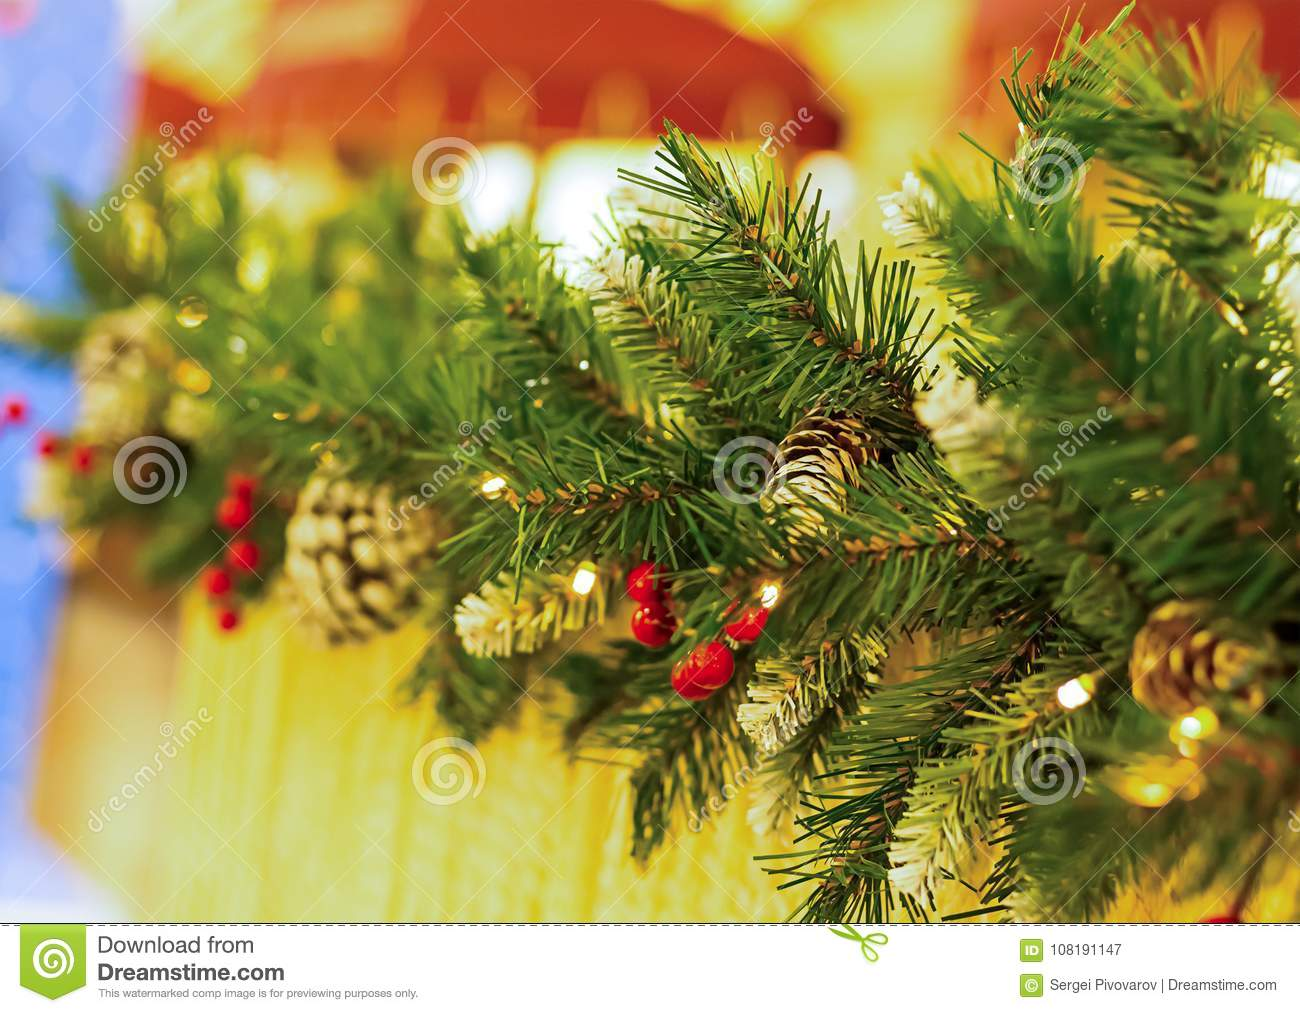 Horizontal border branch of fluffy green fir with cone and red holly berries with perspective street decoration celebrating